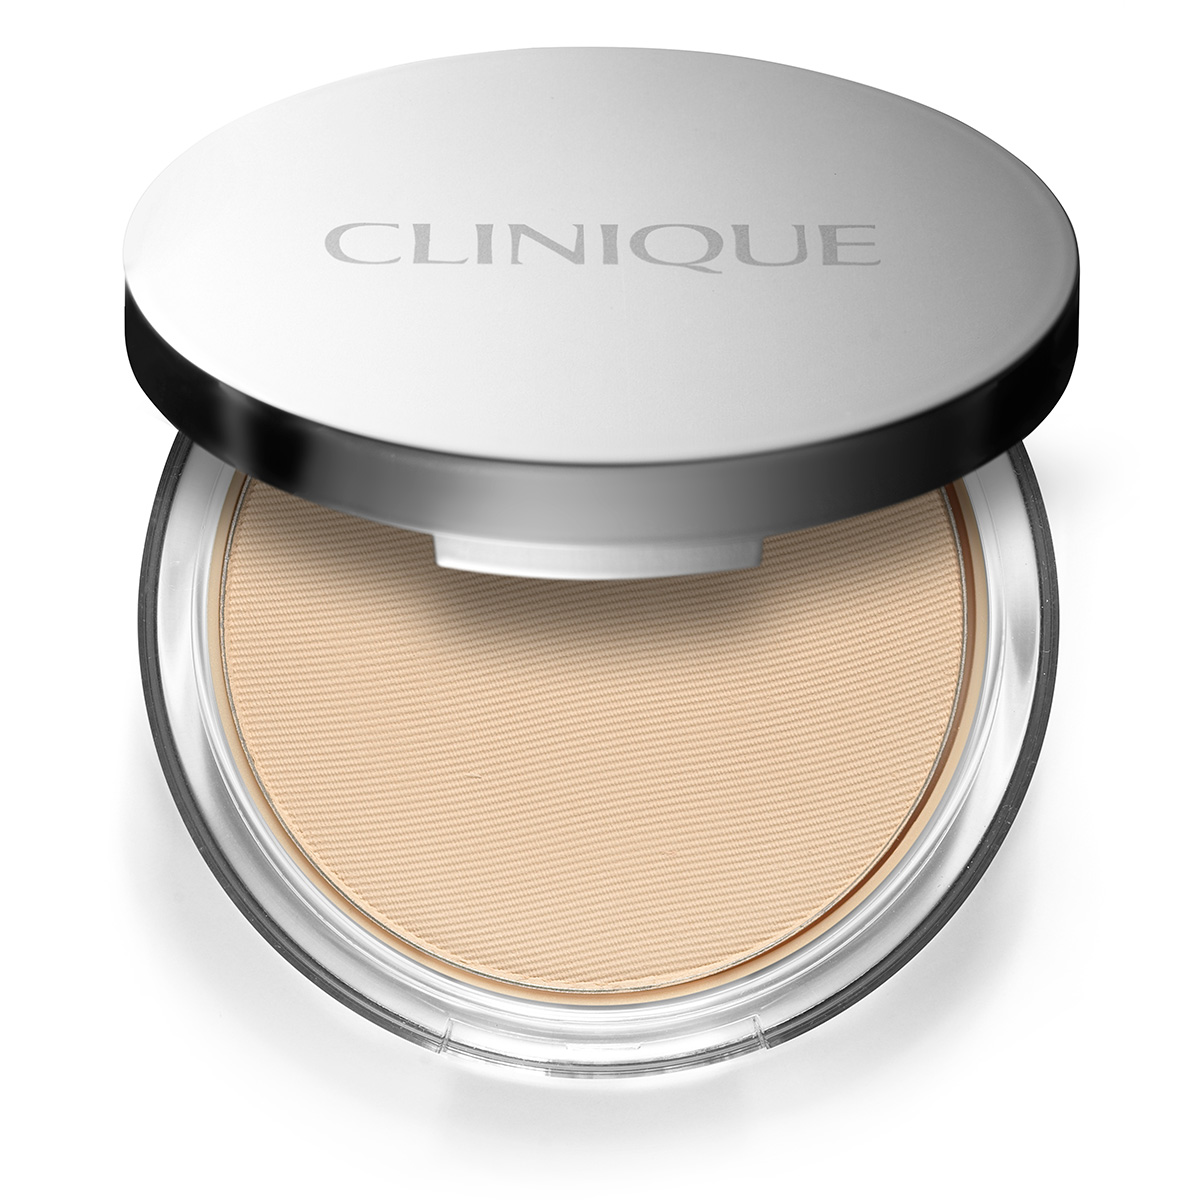 Clinique Superpowder Double Face Powder - 10 g Kompakt pudderfoundation med mat finish